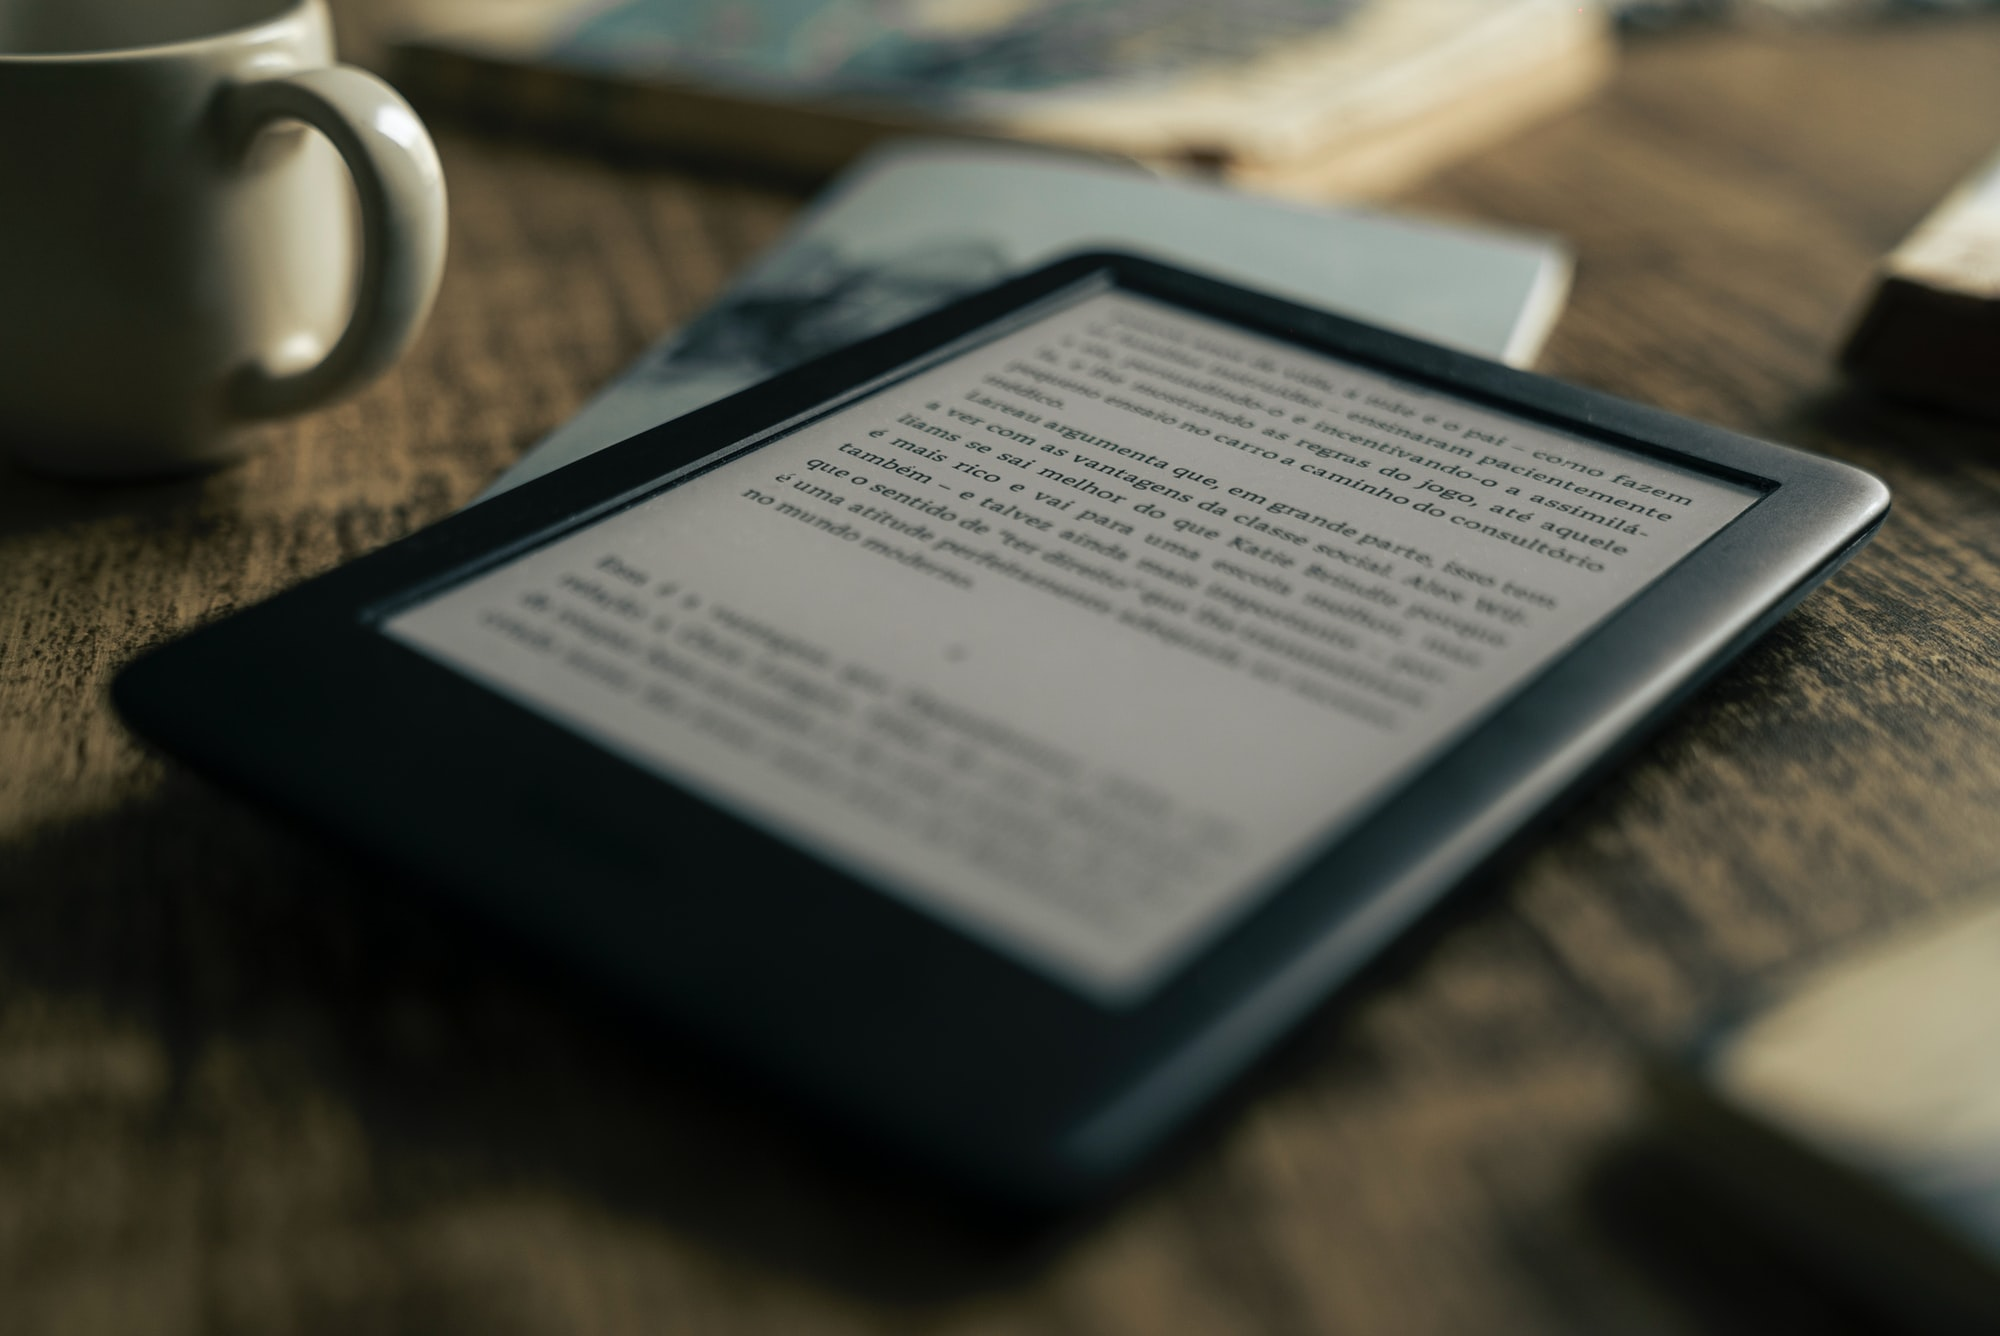 Not all Kindle content is priced equal, especially outside America